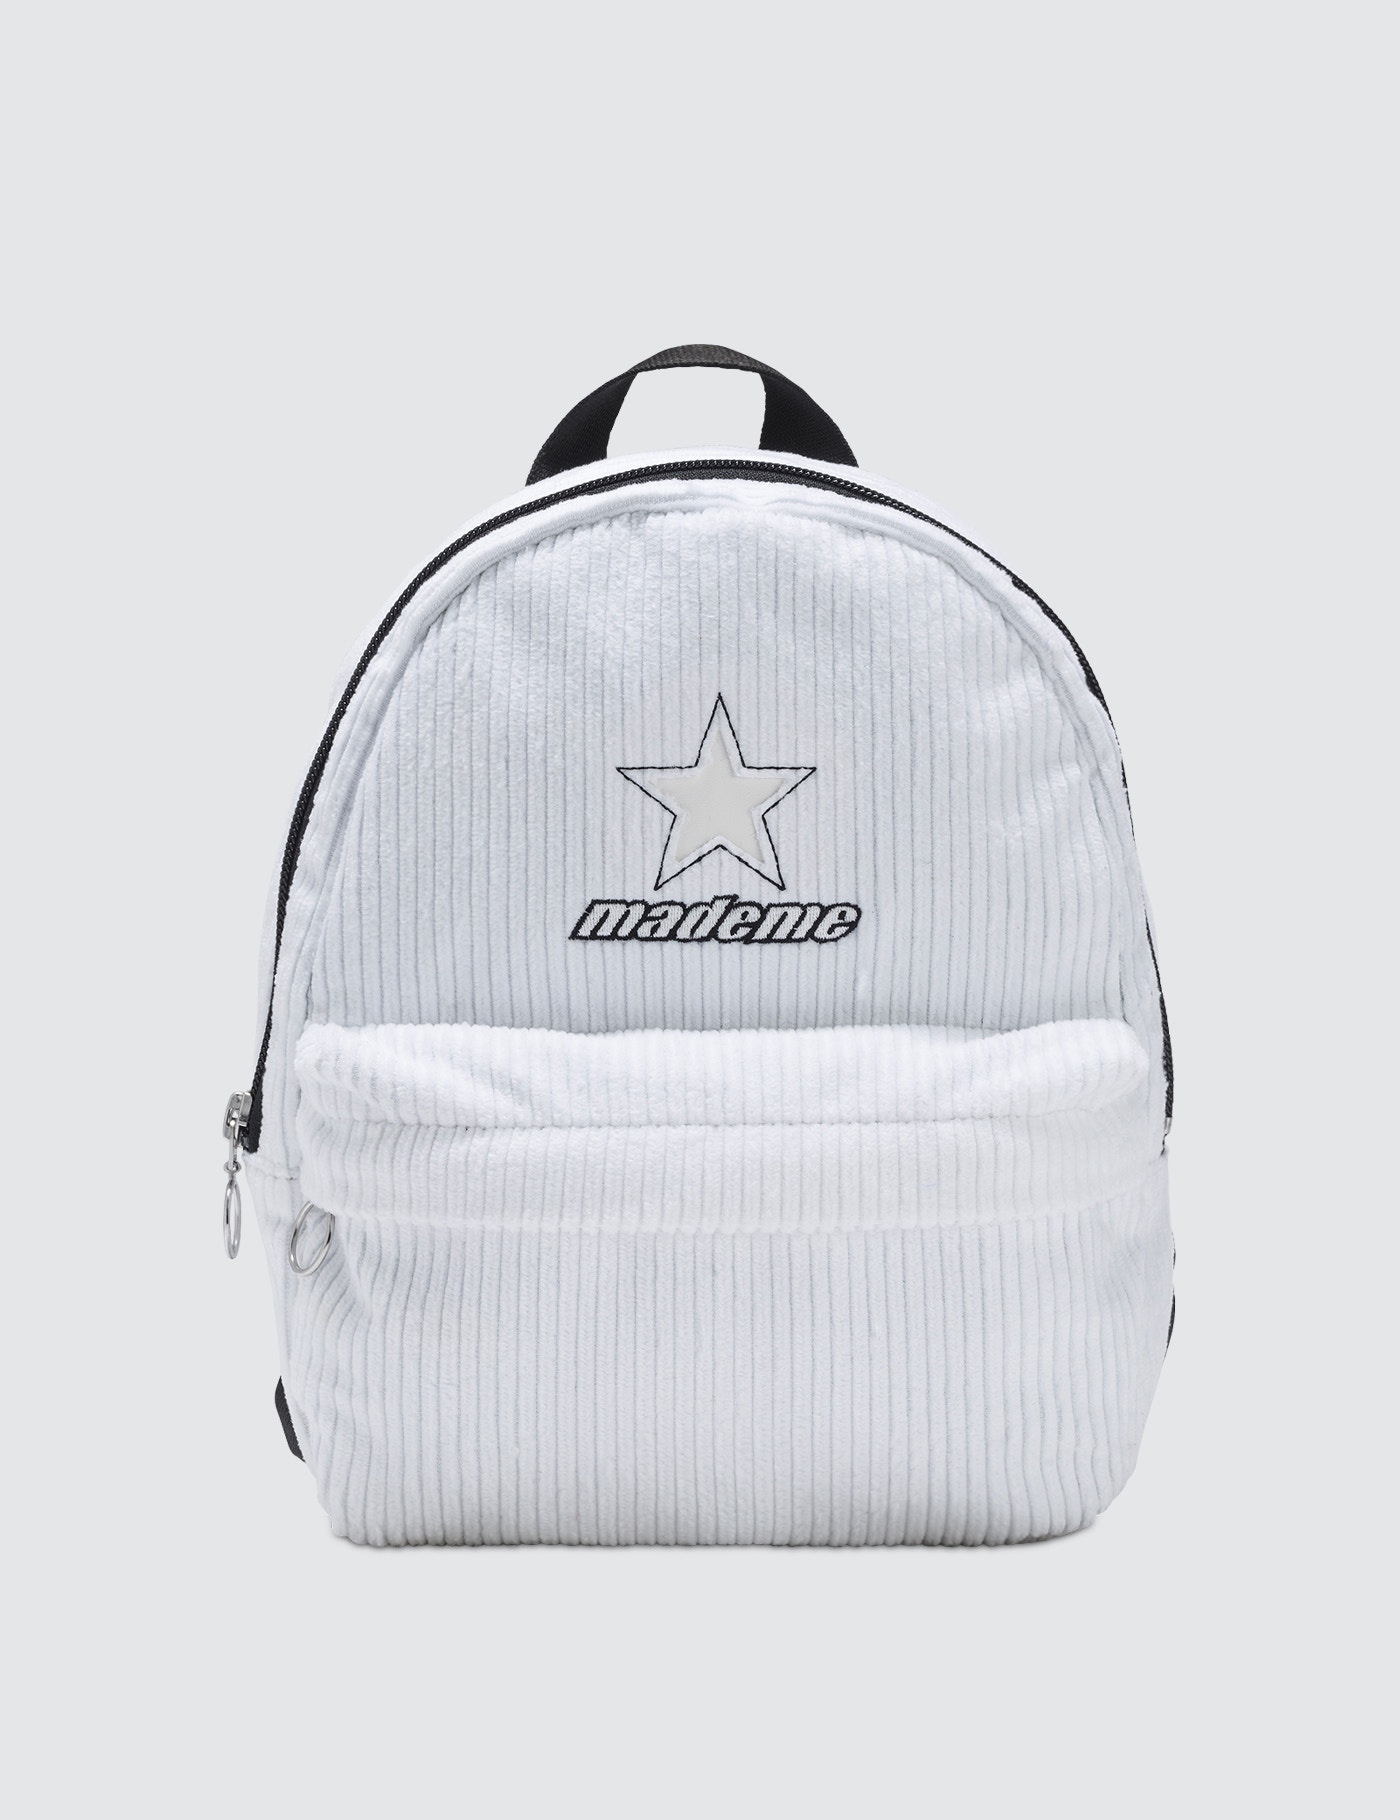 faae513c135 Buy Original Converse Mademe X Super Mini Backpack at Indonesia ...